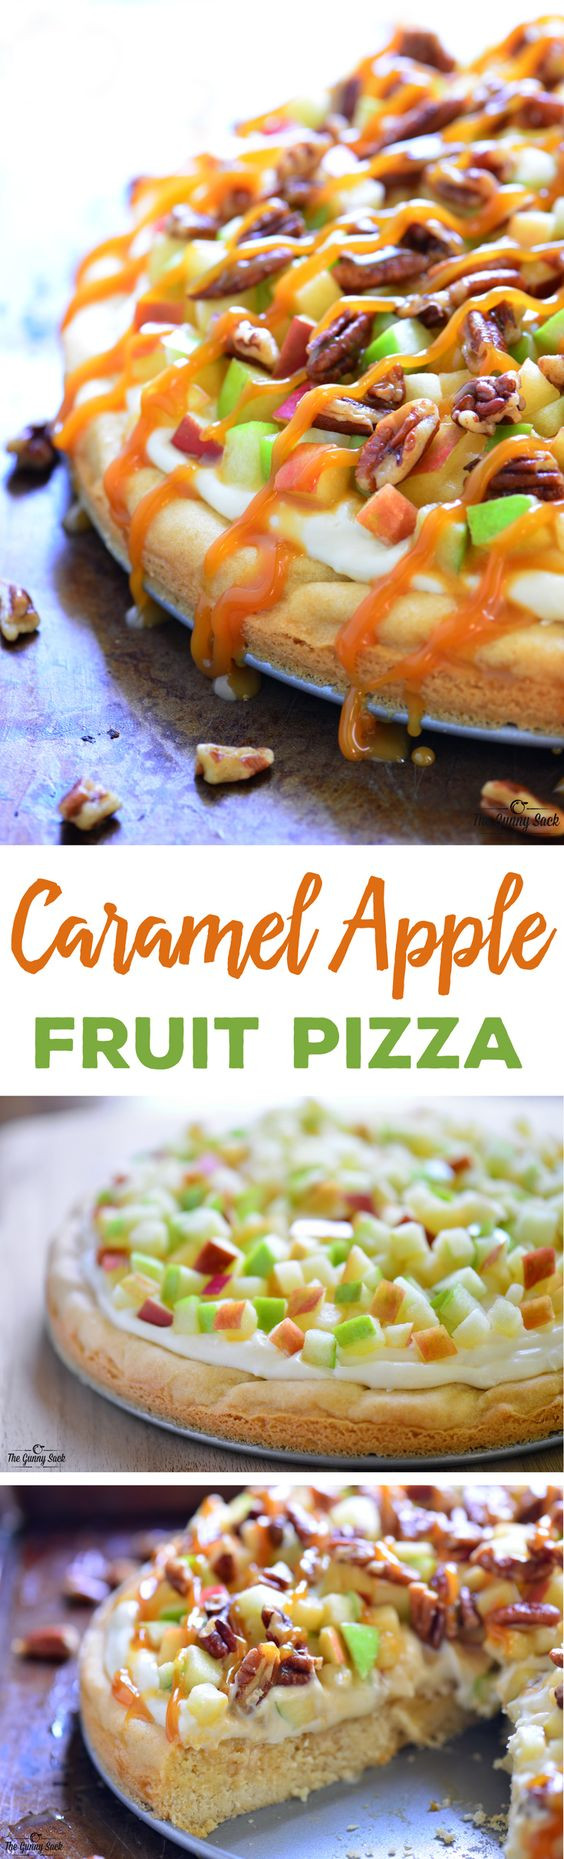 Fall Fruit Desserts  The BEST Easy Fall Harvest and Winter Desserts & Treats